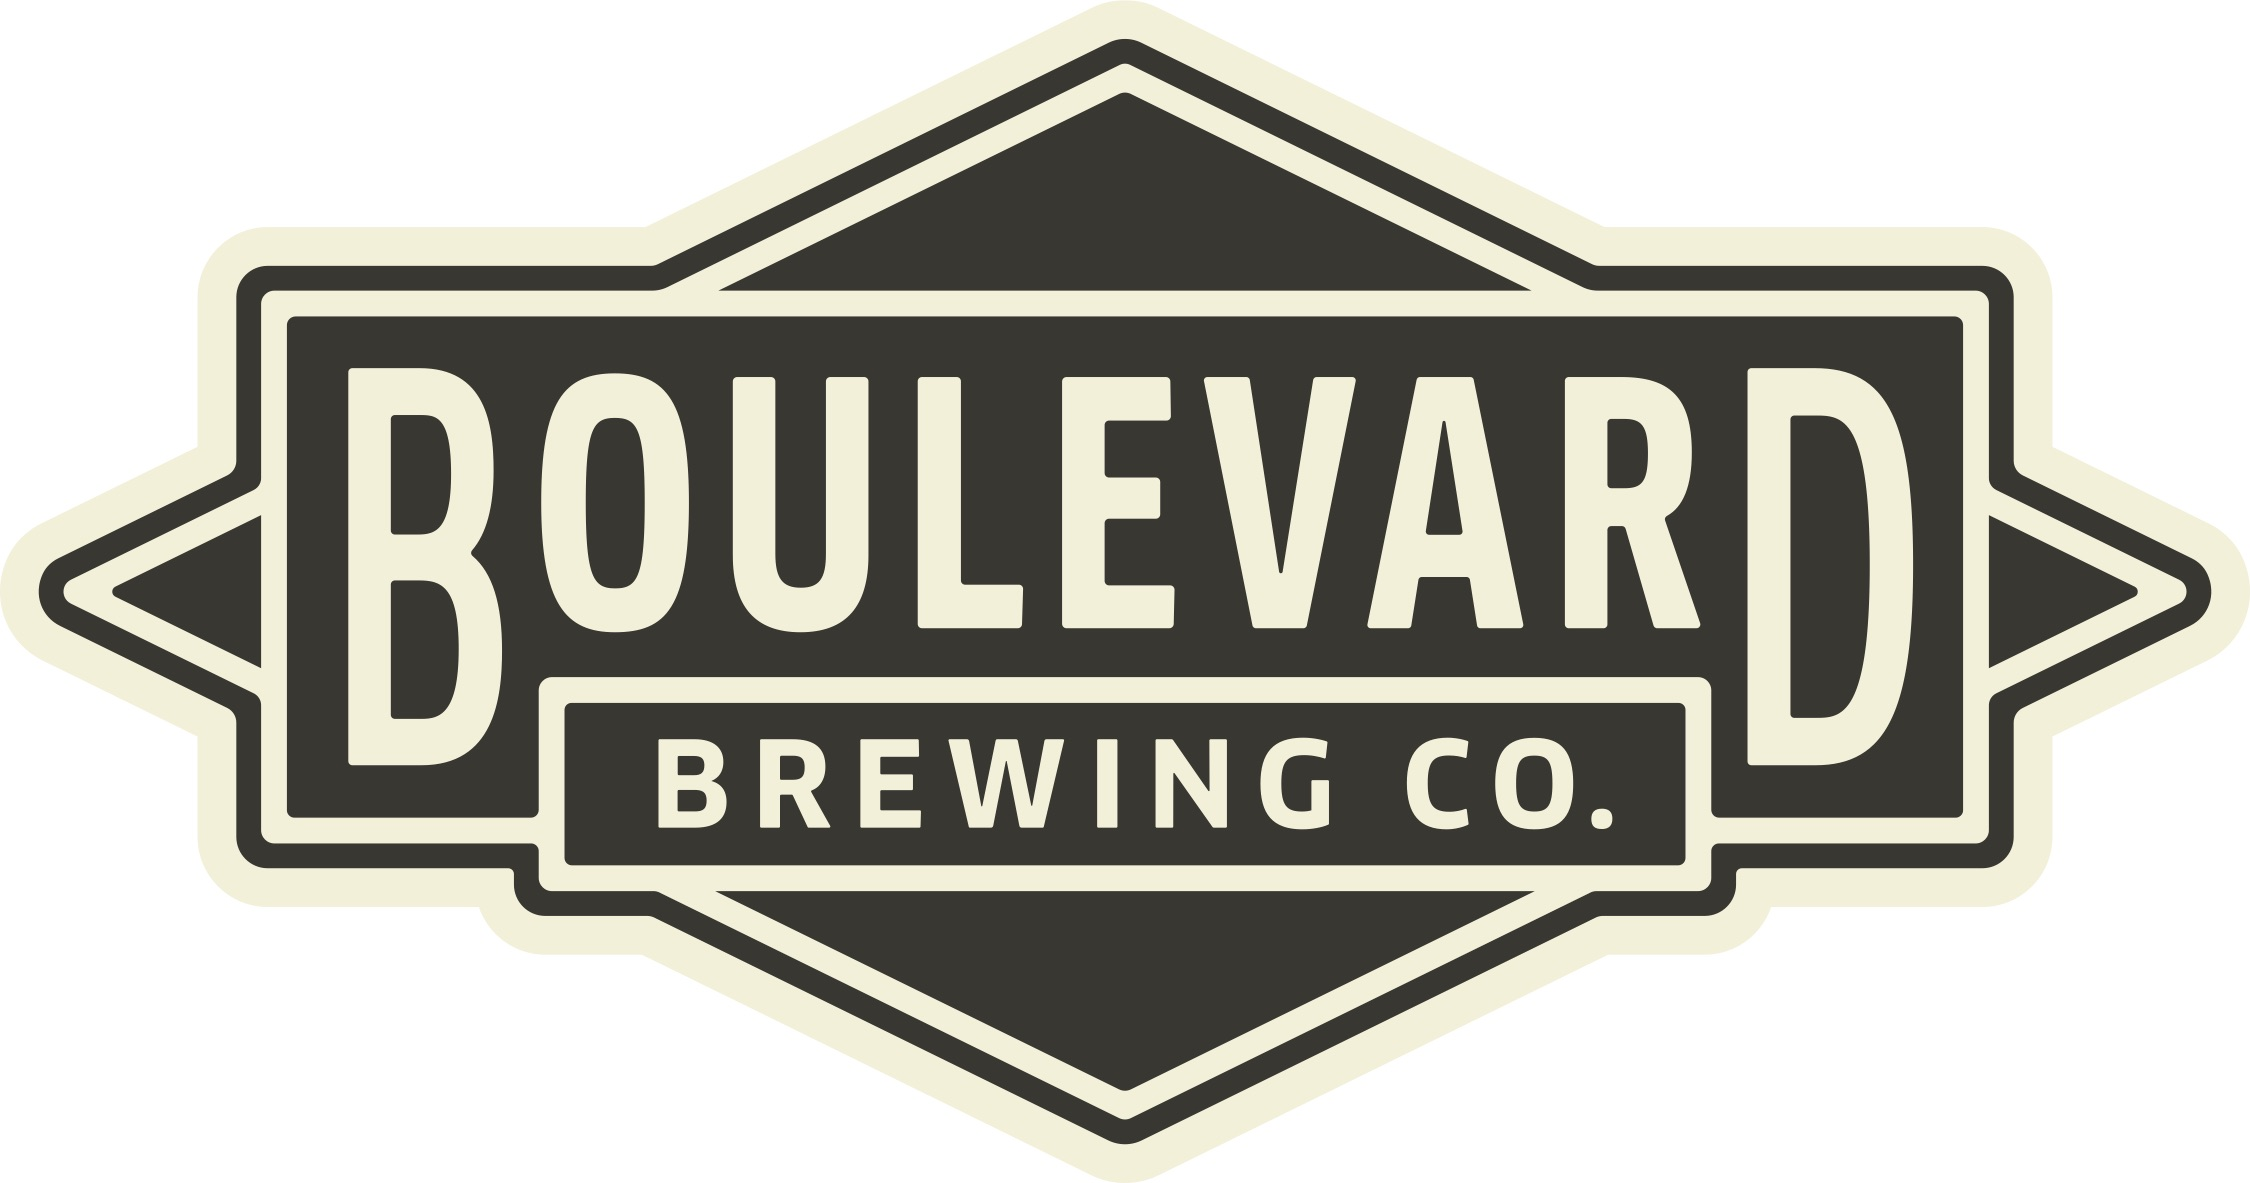 Boulevard Brewing Co logo